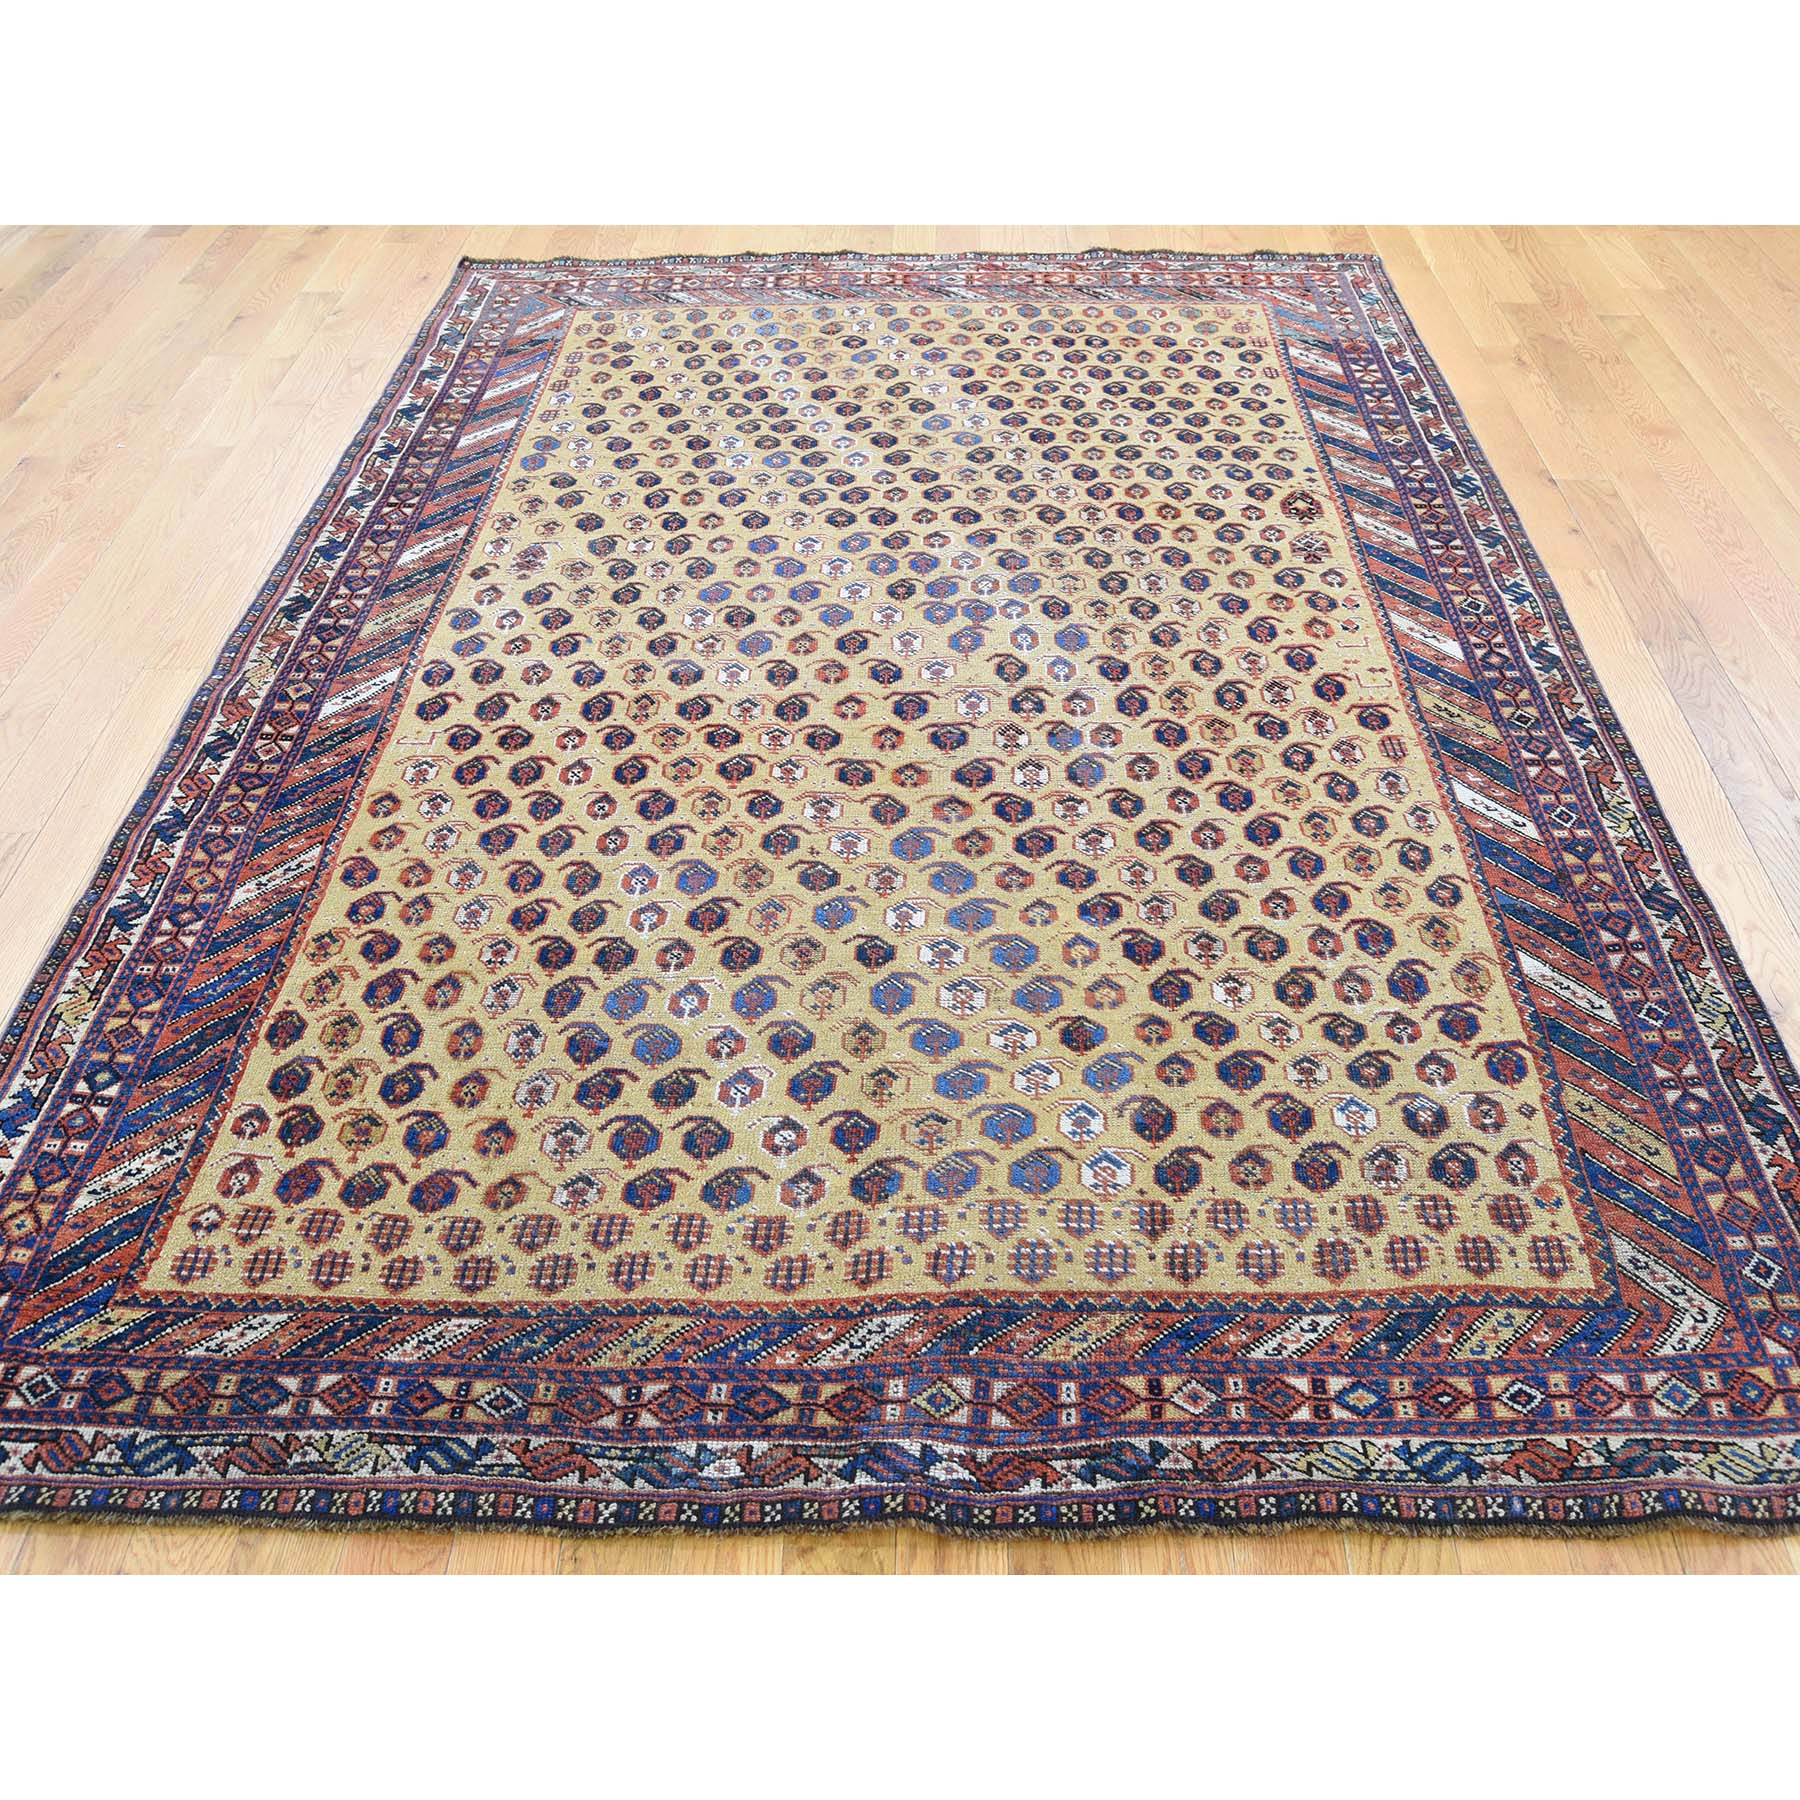 5-9 x7-10  Antique Persian Afshar Even Wear Good Condition Hand-Knotted Oriental Rug